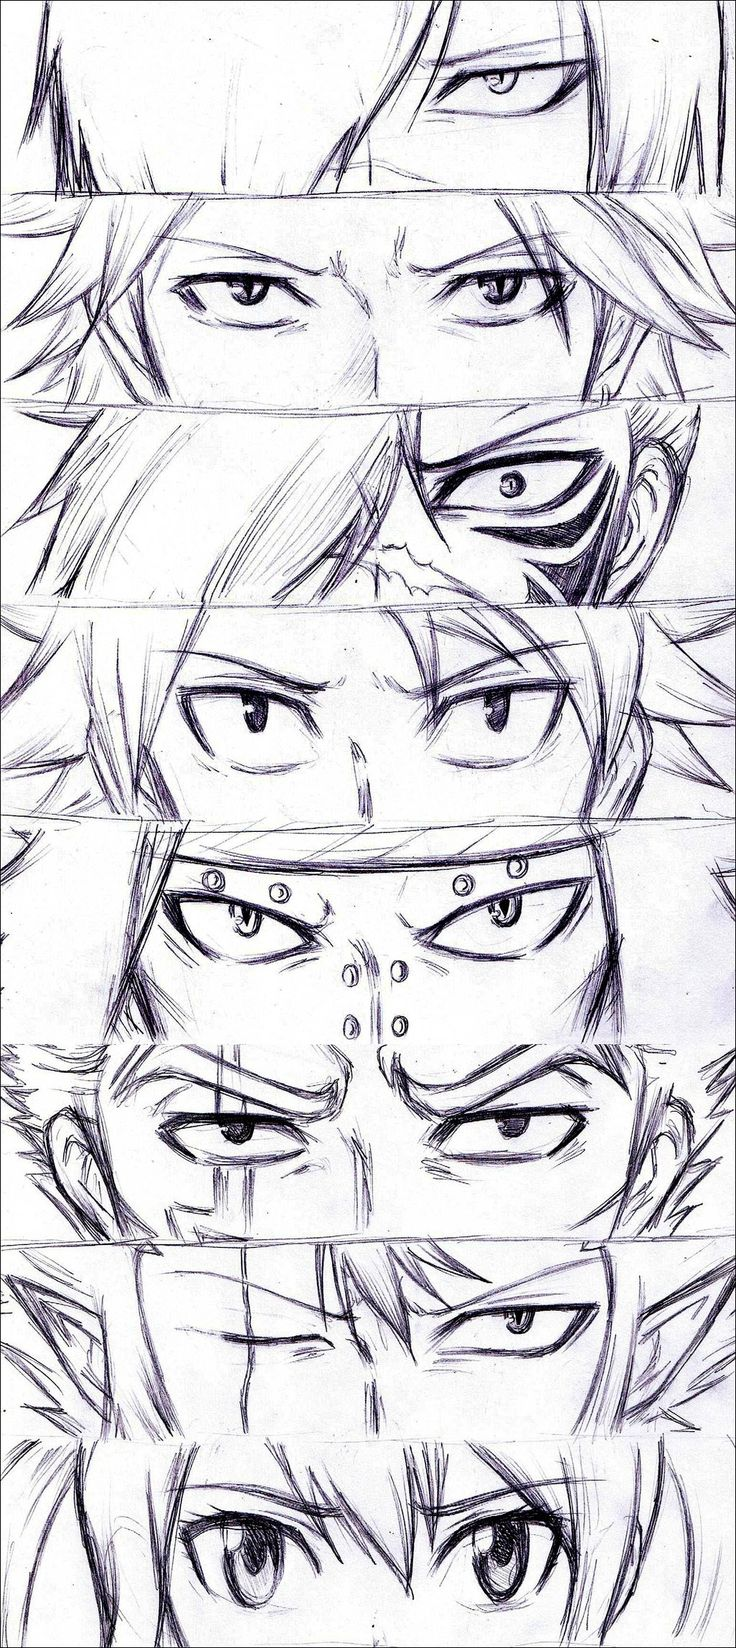 Fairy Tail - Rogue, Sting, Natsu, Gajeel, Laxus, Cobra and Wendy - Eyes dragon slayers